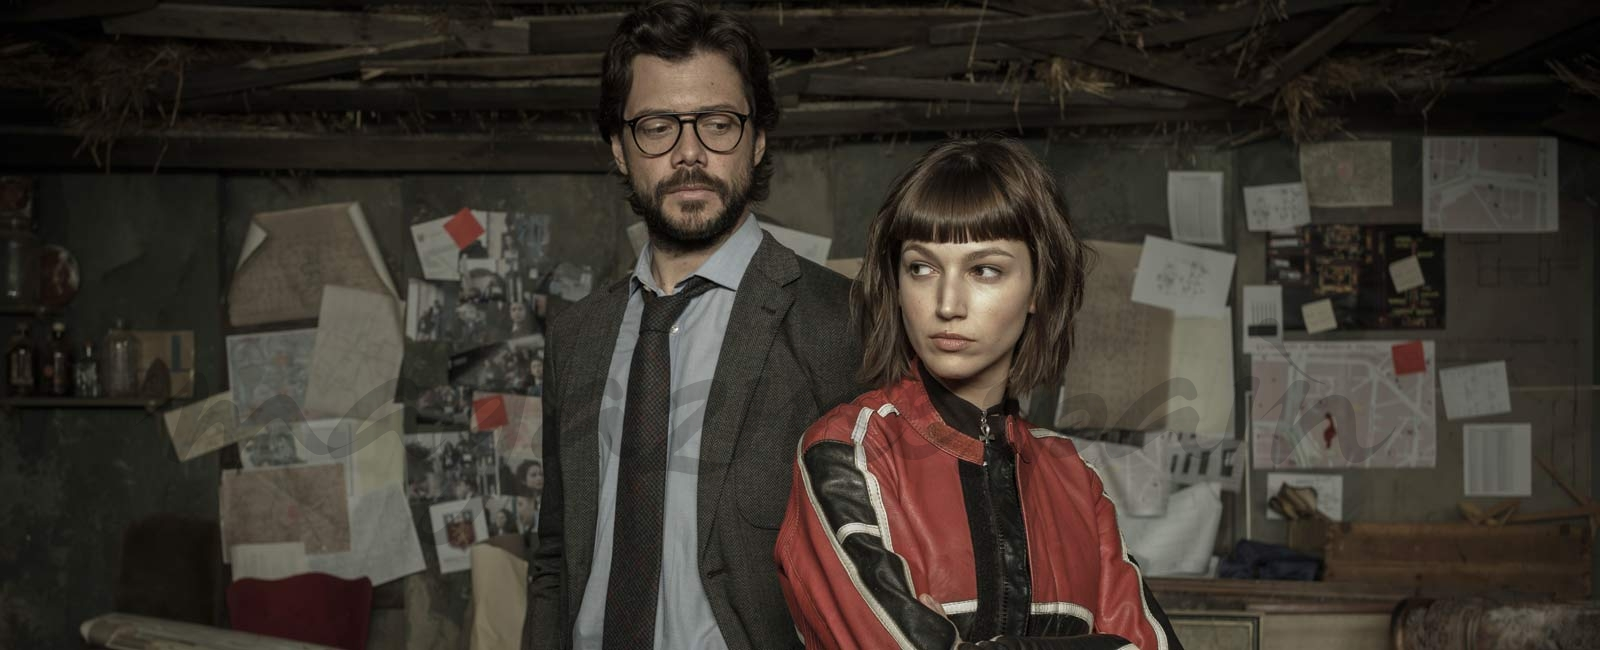 Free Download La Casa De Papel Captulo 2 1600x650 For Your